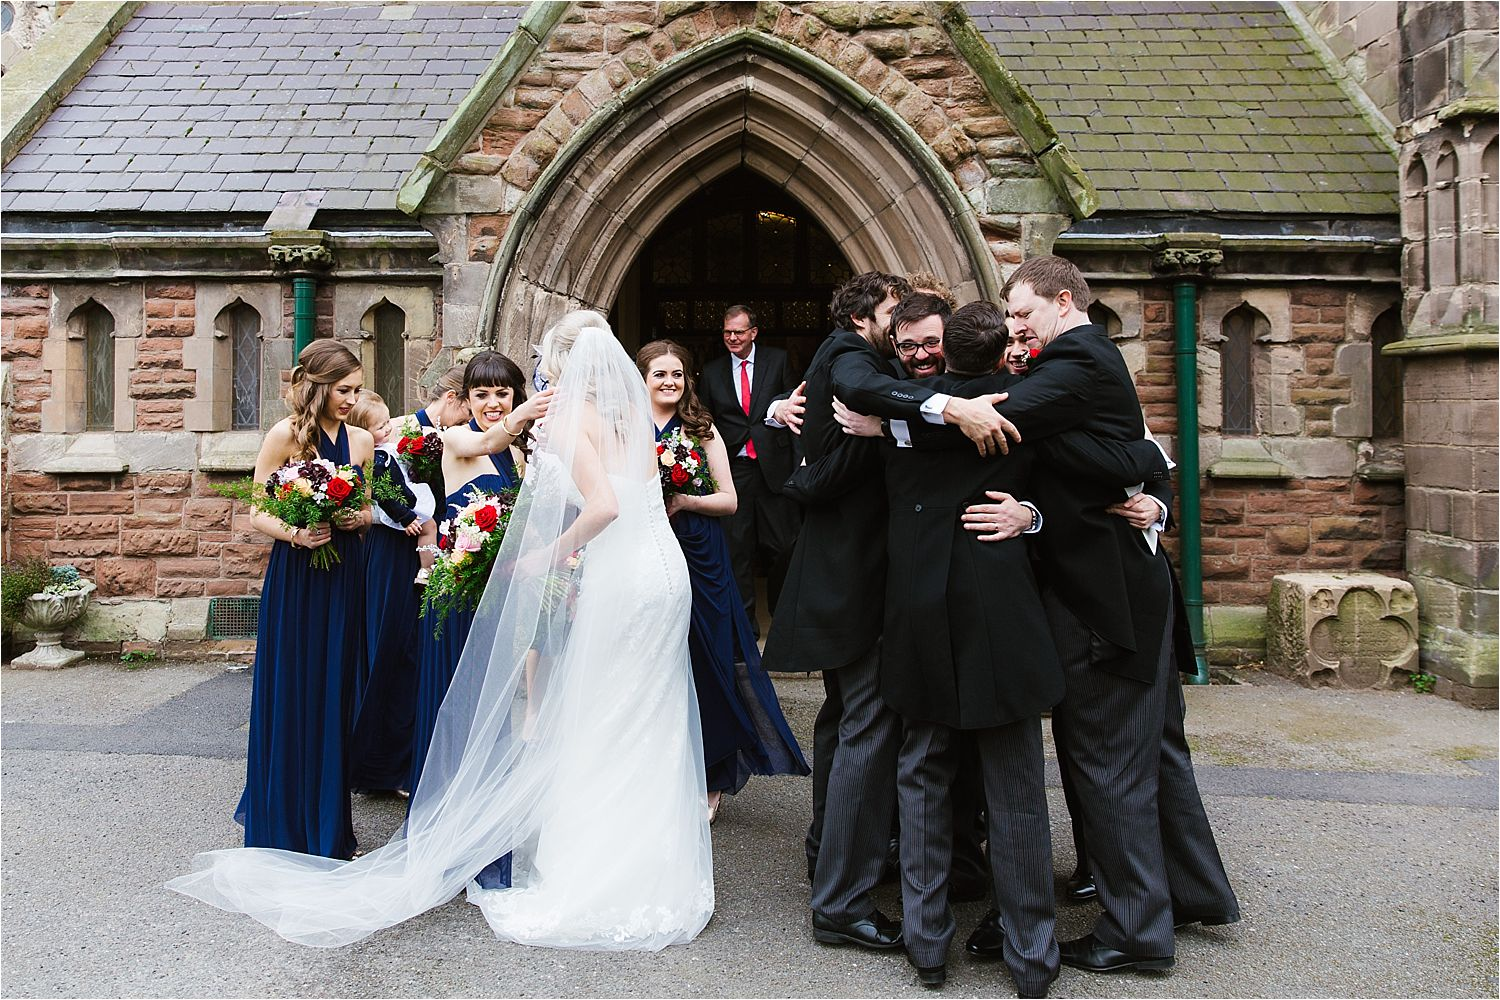 Groom in group hug with his friends outside church after his wedding